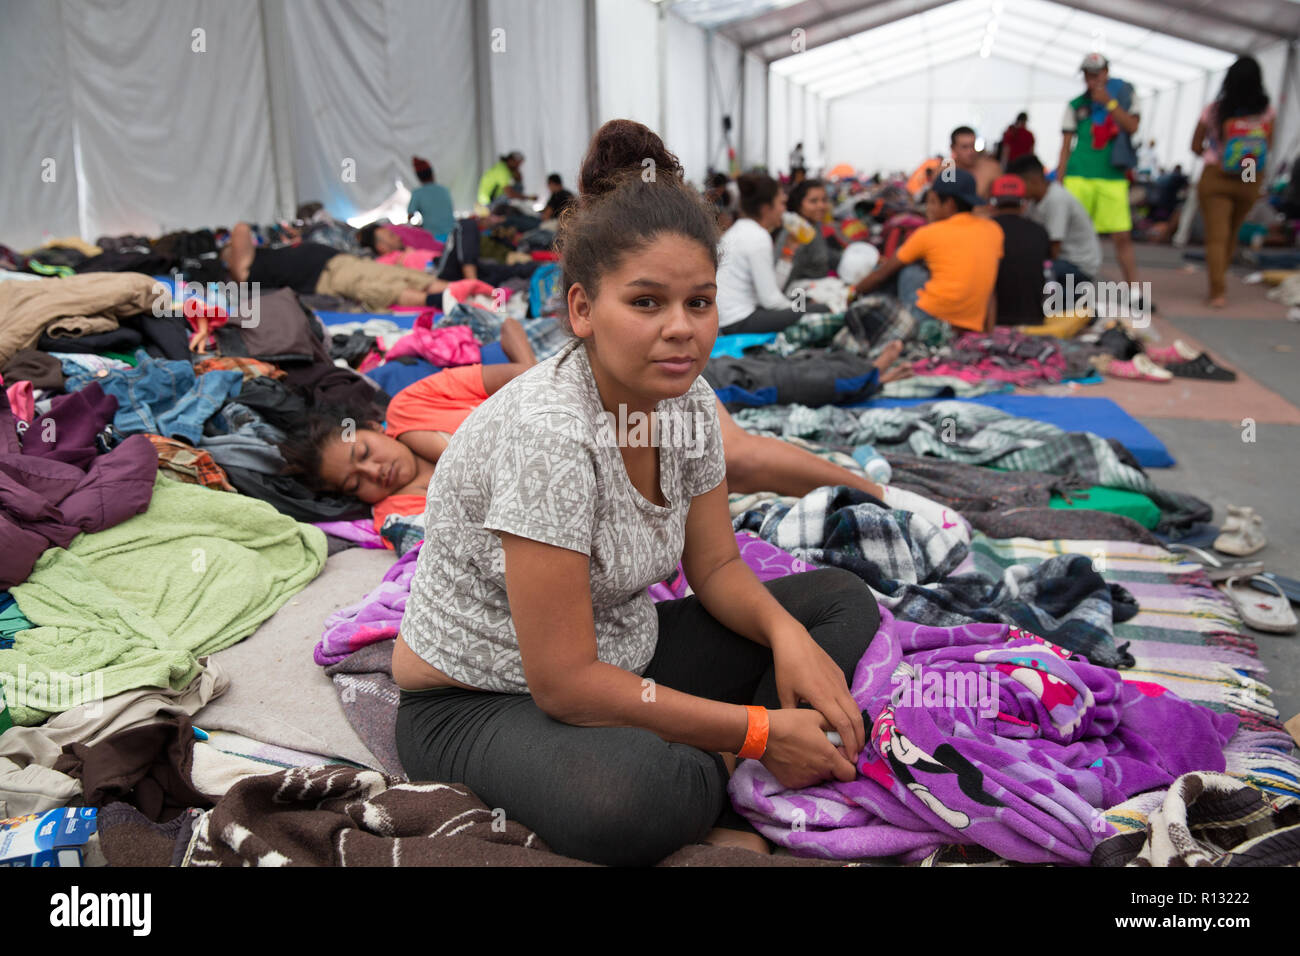 "Mexico City, Mexico. 8th November, 2018. Portrait of Norma, 22, a Honduran migrant at the Jesus Martinez stadium in Mexico City, Mexico. Norma joined the caravan in Tapachula, in the southern Mexican state of Chiapas, where she had been living for three years with her husband, who is Mexican and in the military. She is travelling with her parents and 5 cousins, they want to reach the United States. Norma is four months pregnant and left behind two daughters, a one-year-old in Chiapas and a five-year-old, in Honduras. ""You just can't live in Honduras. Credit: Benedicte Desrus/Alamy Live News Stock Photo"